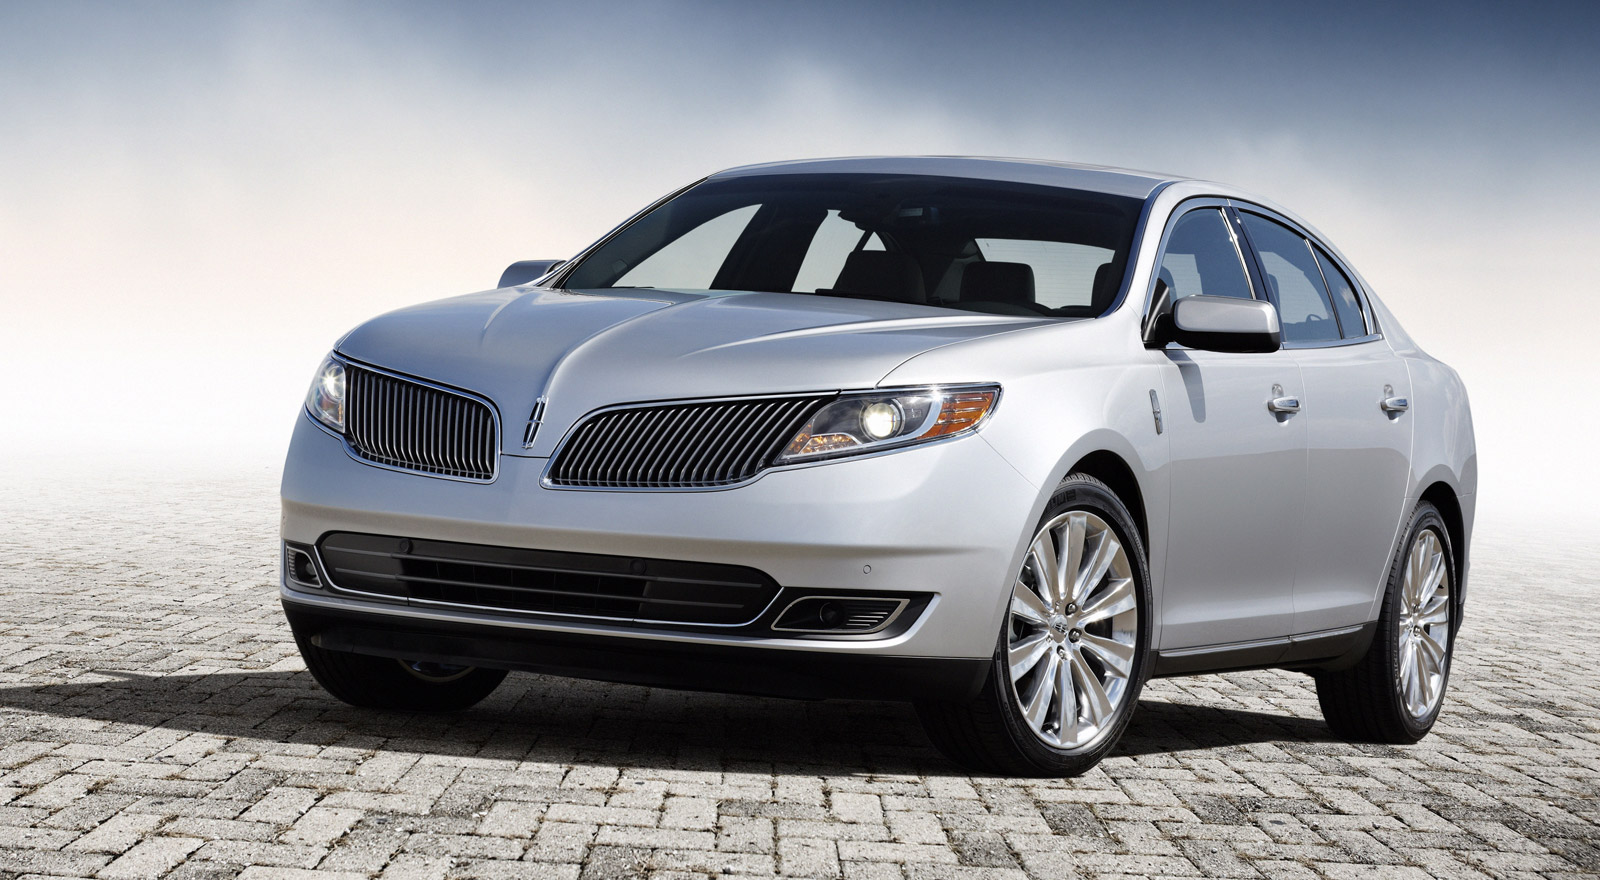 2016 Lincoln Mkt >> 2018 Lincoln MKS Concept | Car Photos Catalog 2019